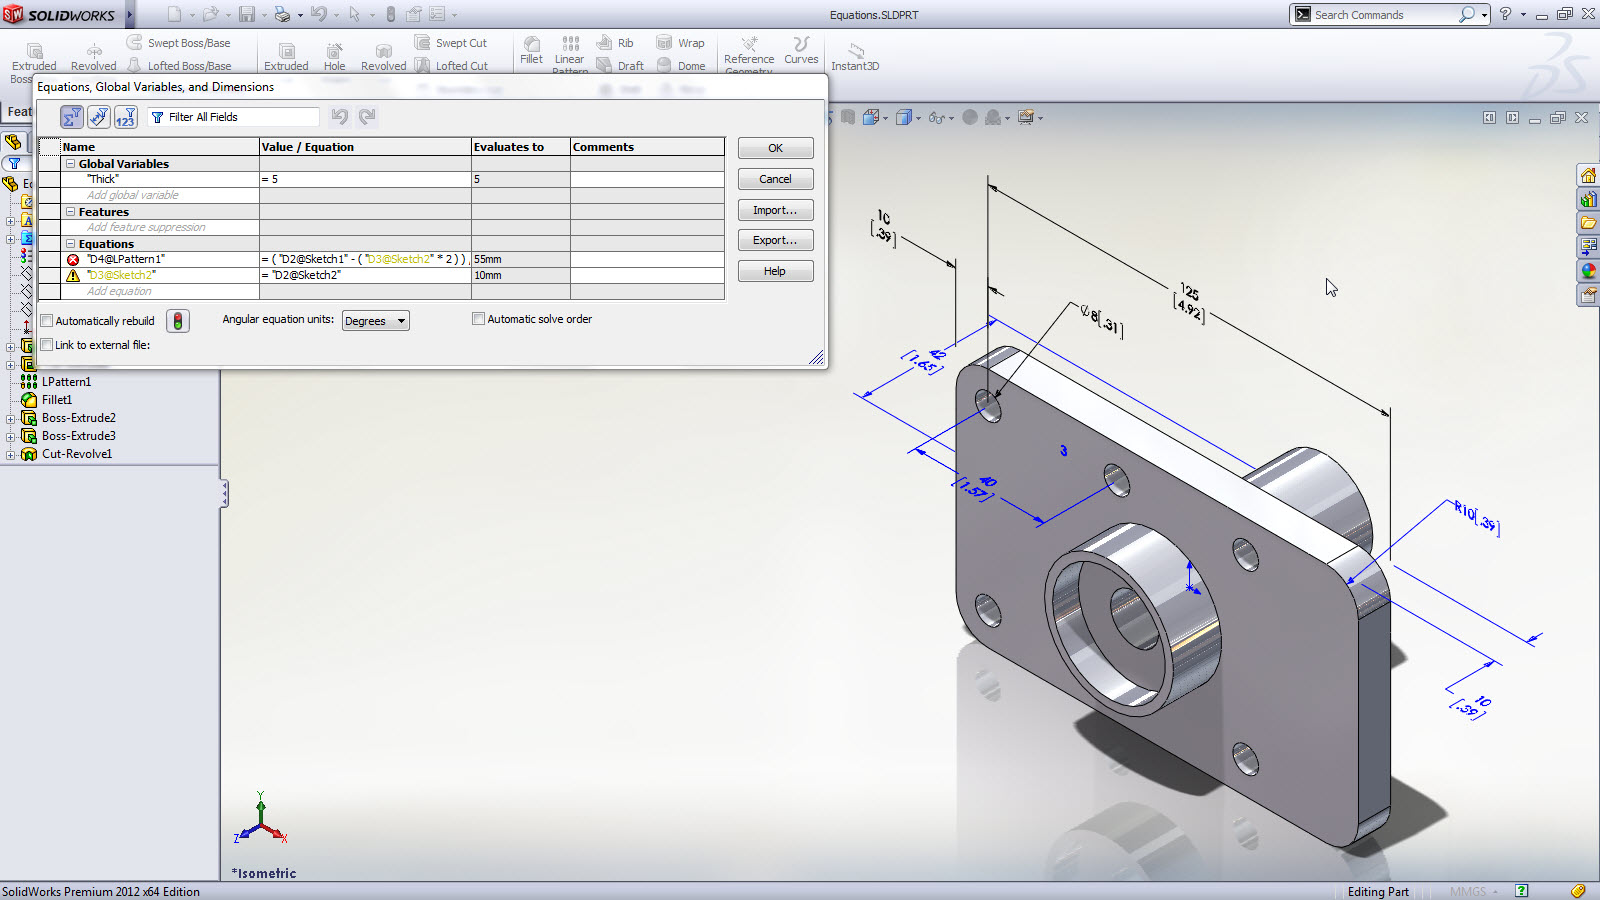 New in solidworks 2012 enhanced equation editing Simple cad software